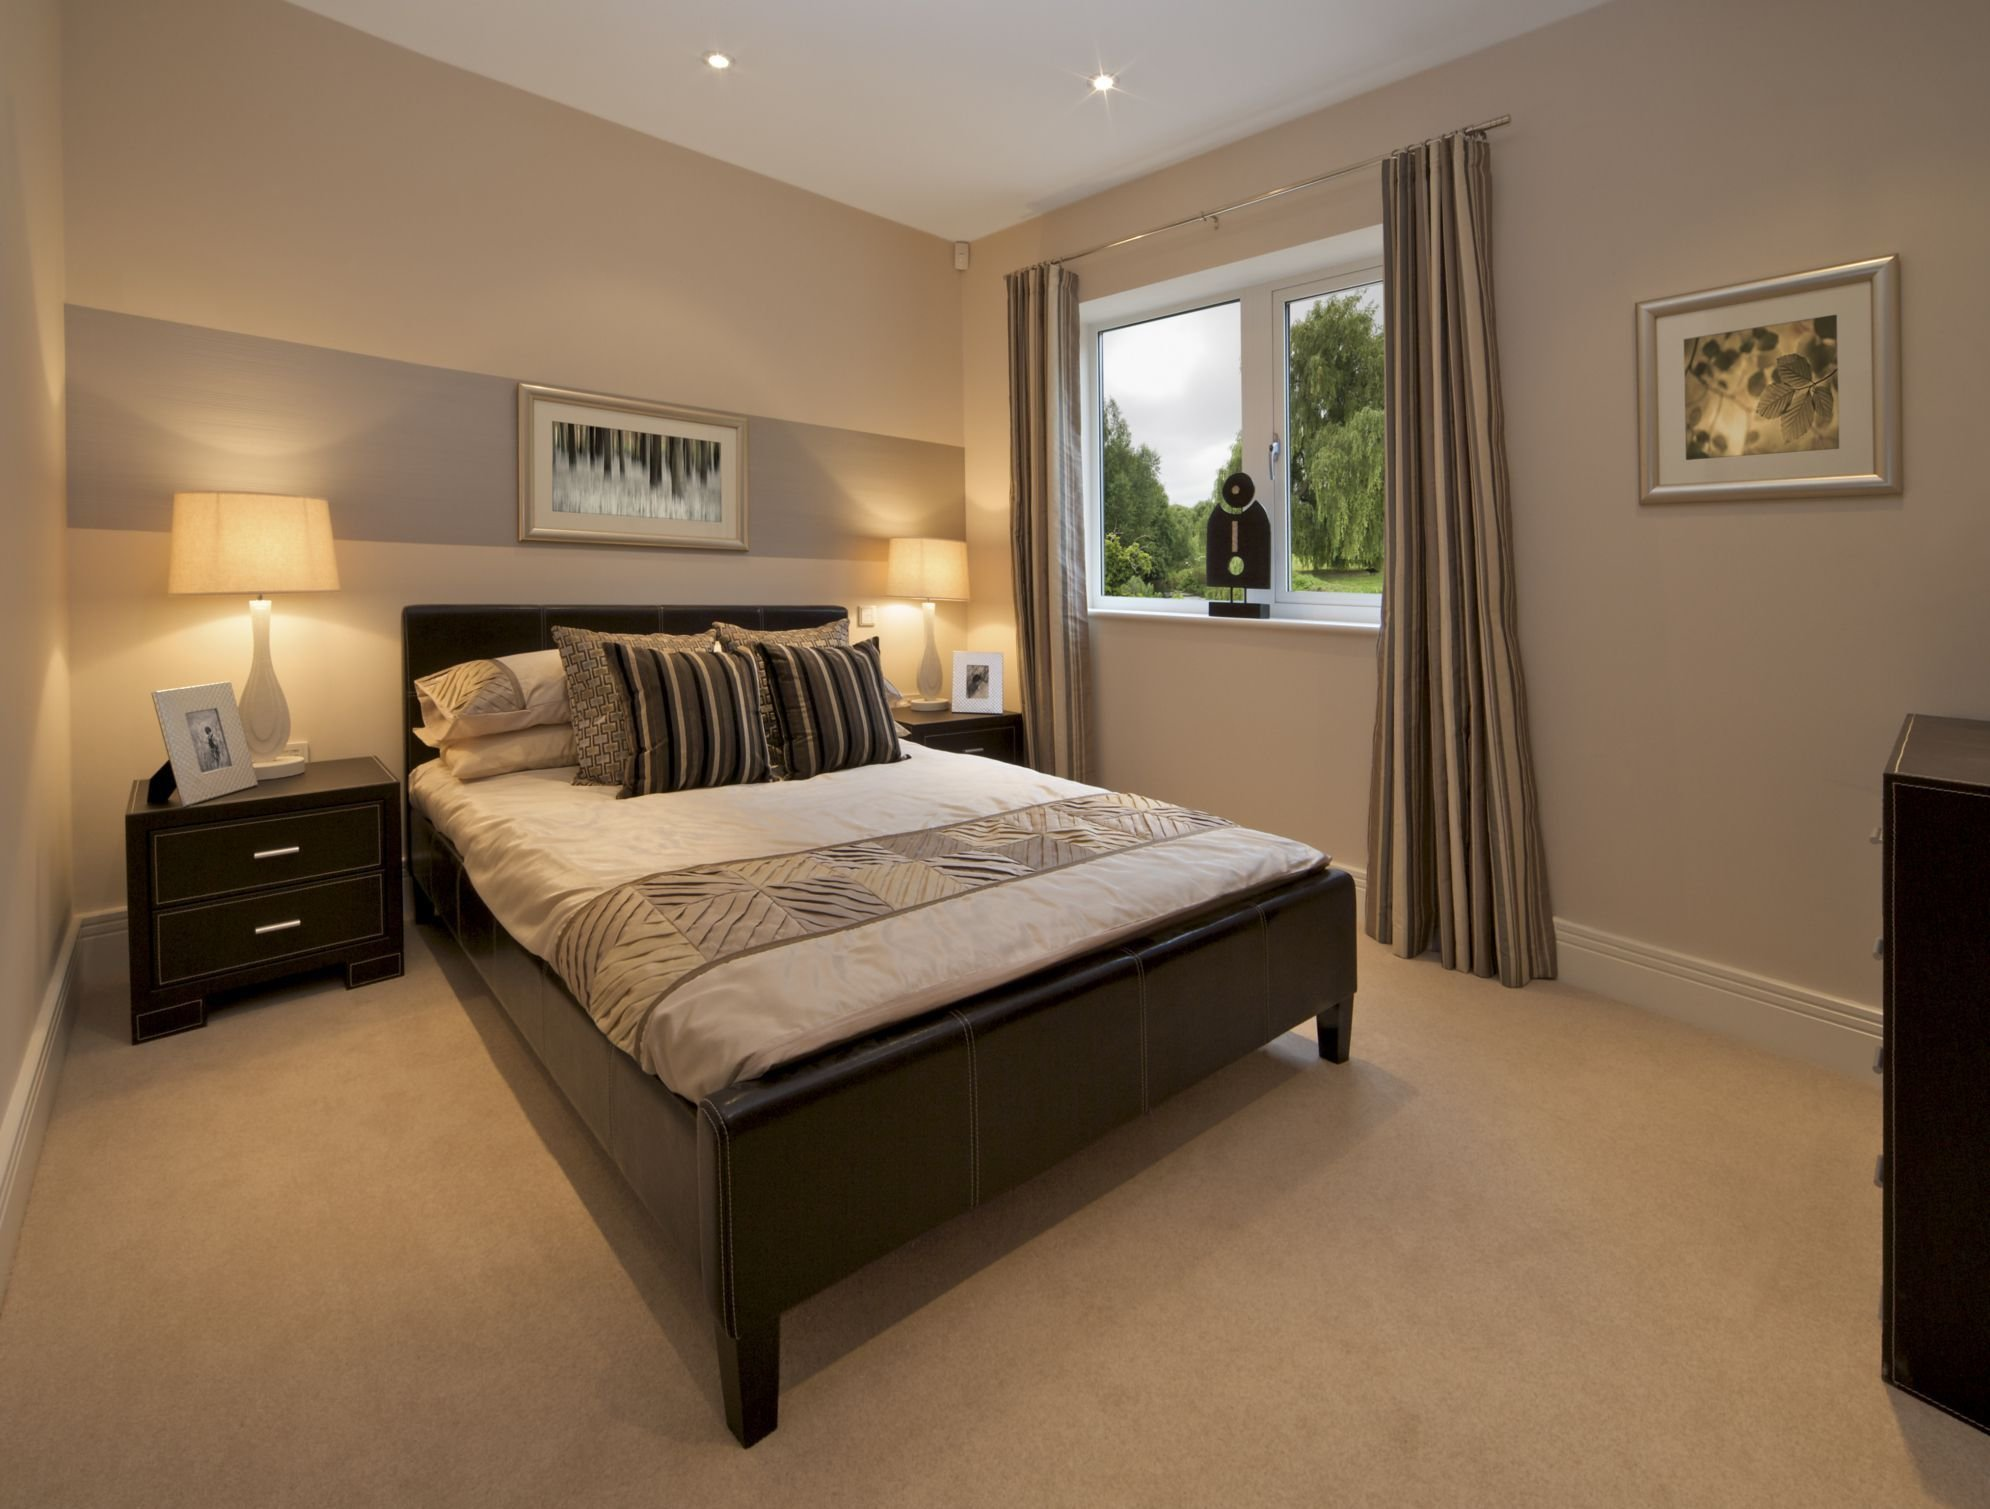 Best How To Use Carpet To Make Your Room Look Bigger With Pictures